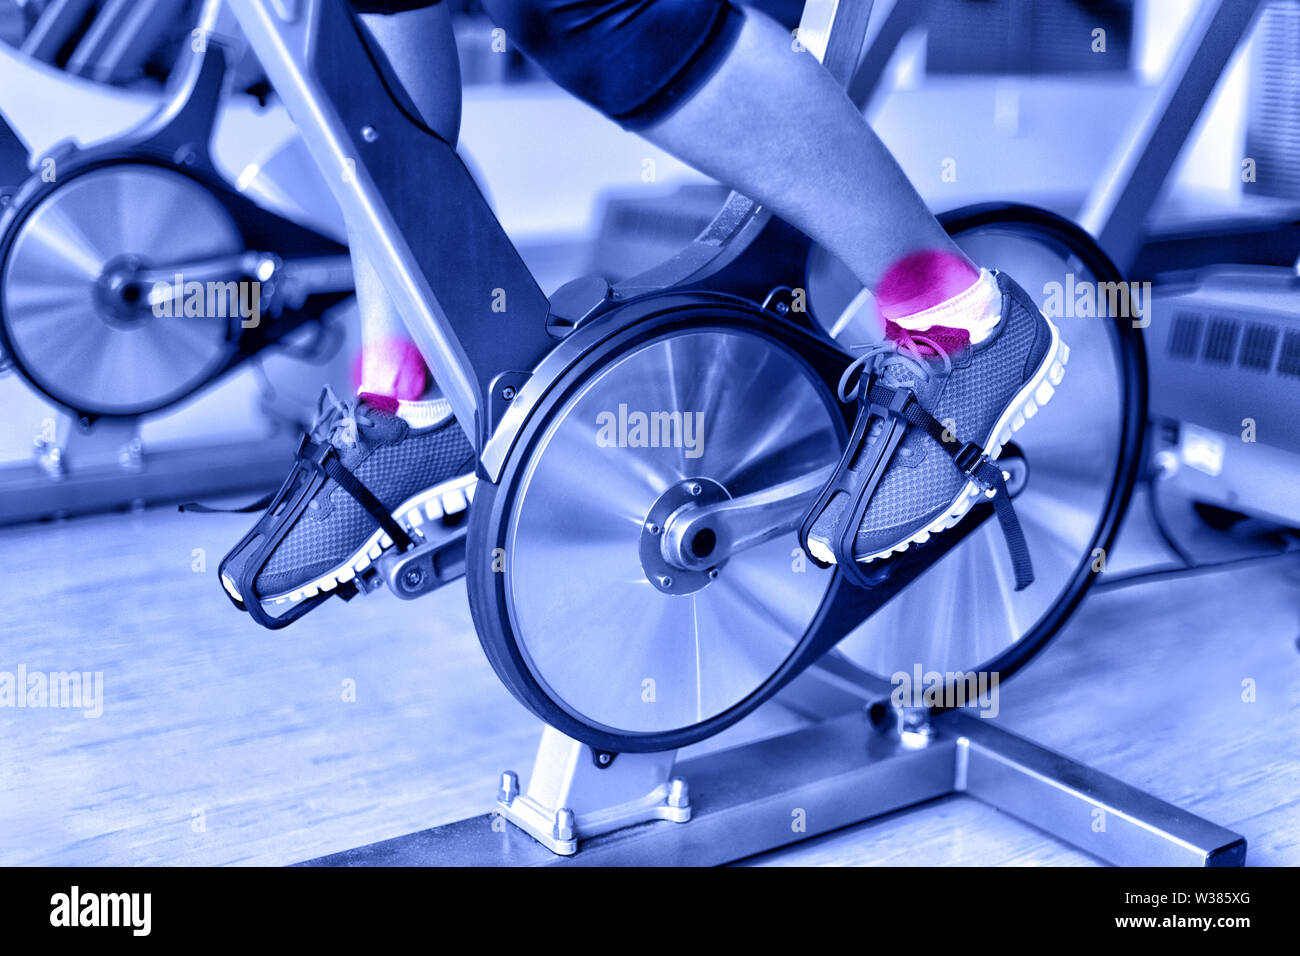 Sports injury - ankle pain during training on spinning bike at gym. Closeup of female athlete's legs using bicycle machine at fitness center in blue monochromatic filter. - Stock Image